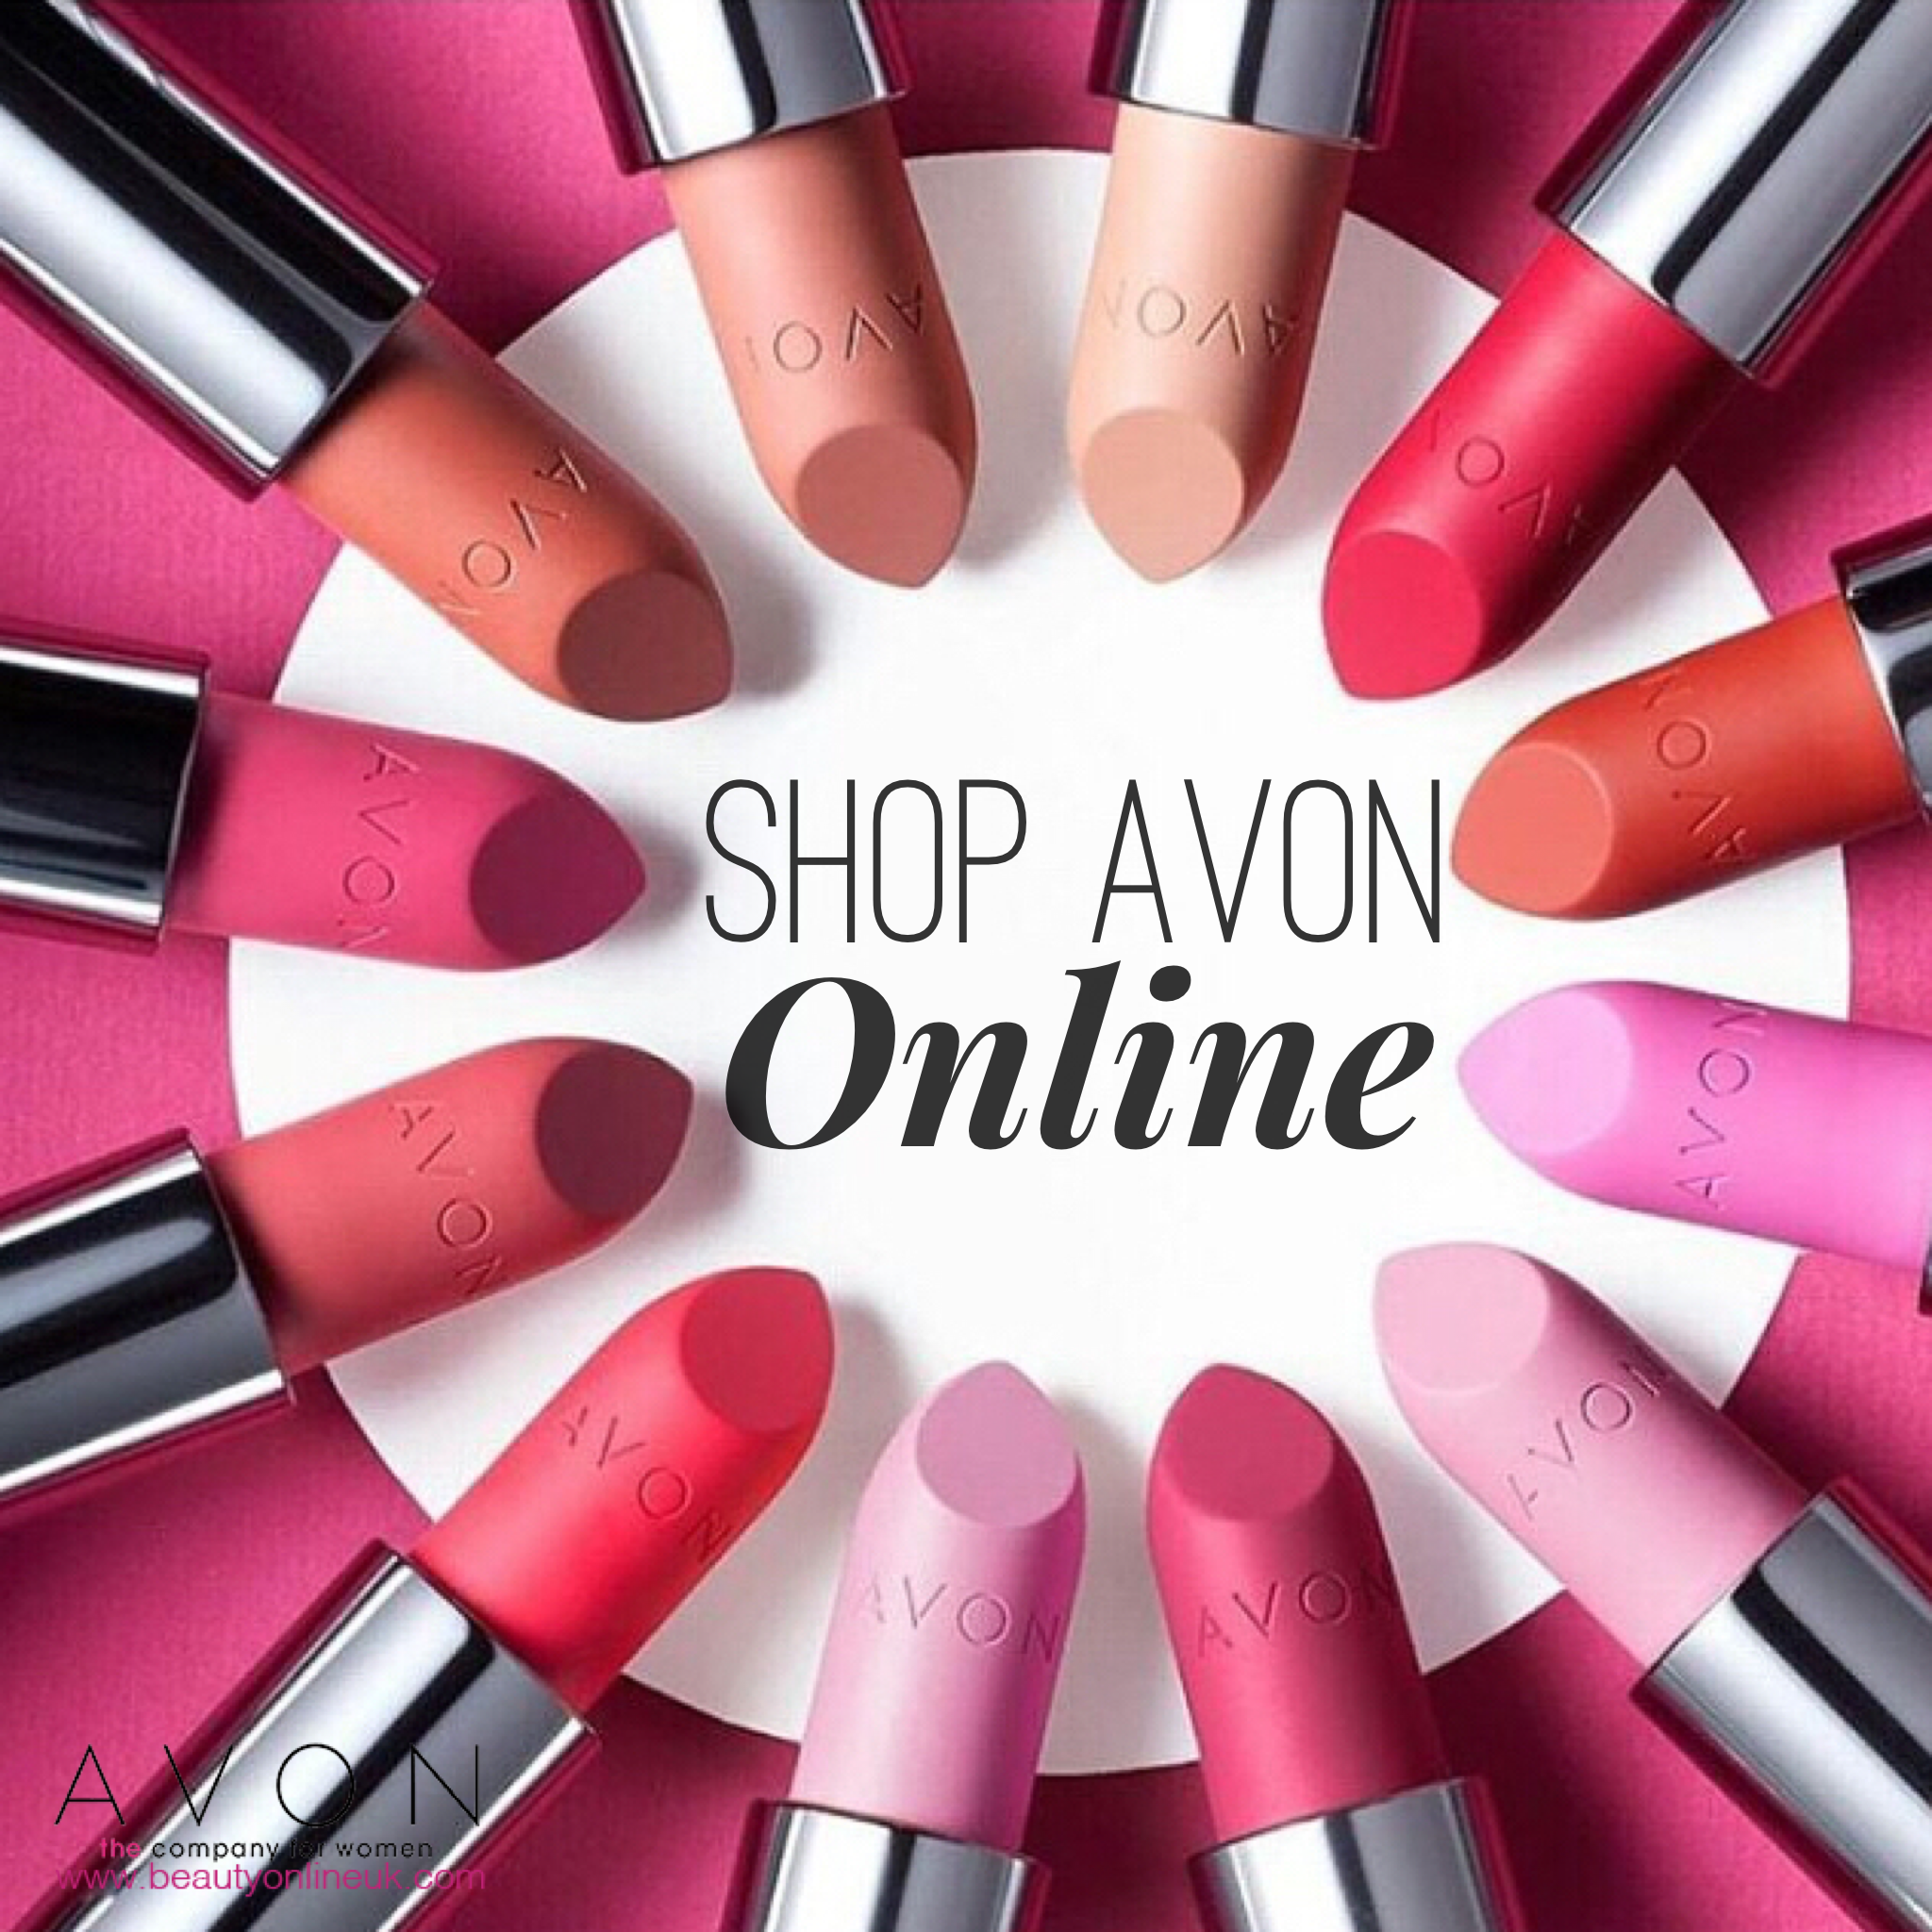 Beauty Online UK Shop for Avon Online, or for discounts